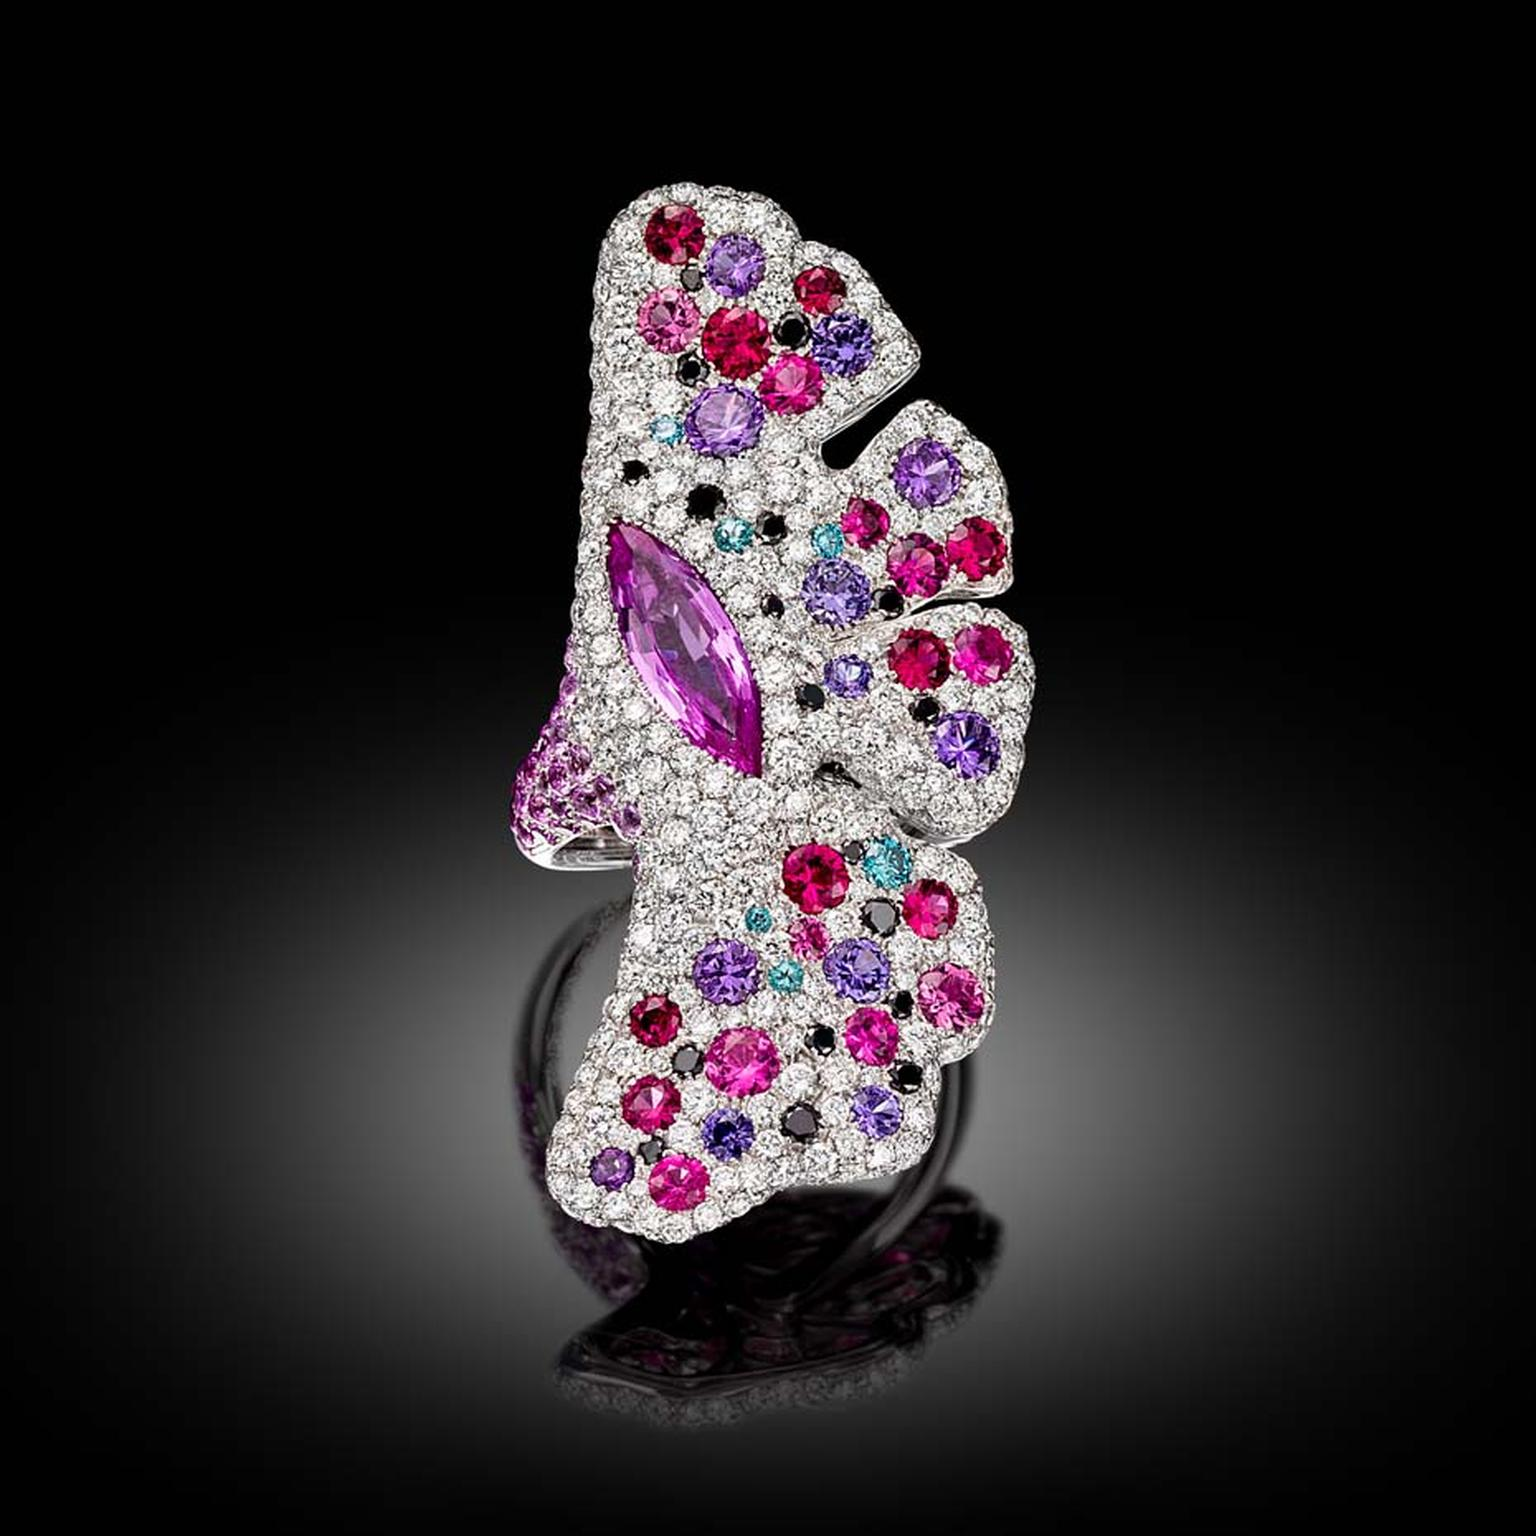 Palmiero Winged Flowers ring from the La terra e le Nostre Fantasia high jewellery collection.